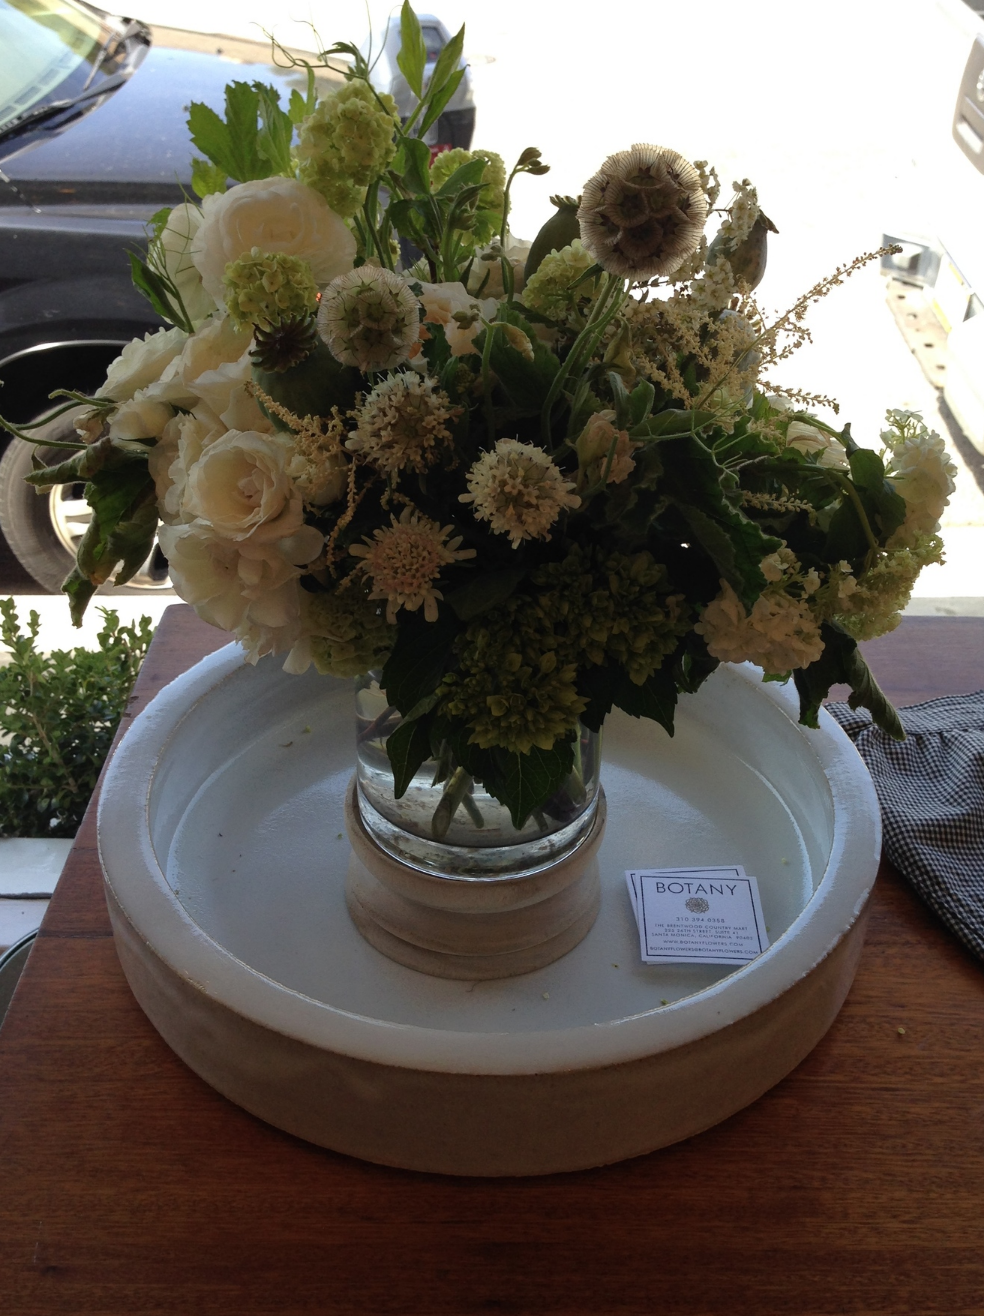 A beautiful arrangement of flowers by Brentwood Country Mart florist, Botany, which is around the corner from the pop up